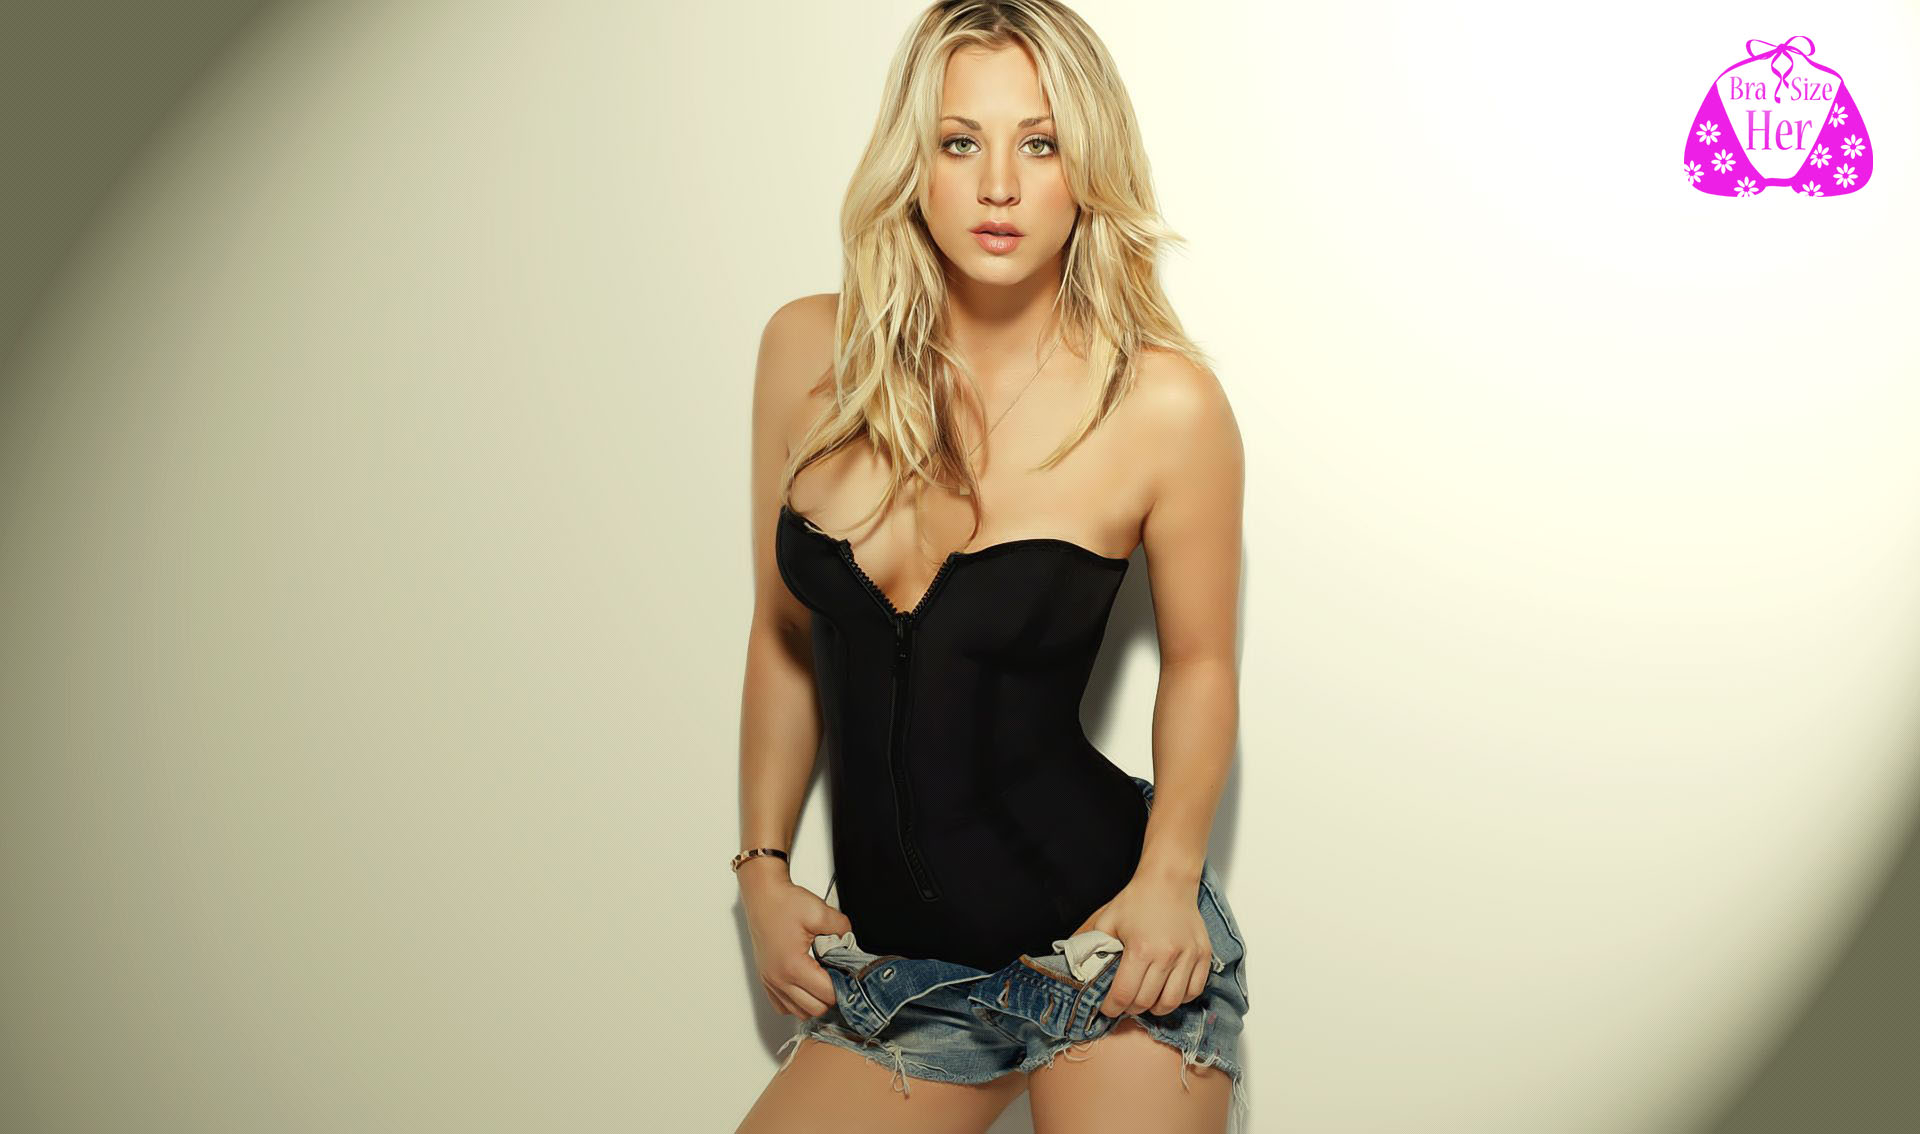 kaley cuoco bra size pics and info at herbrasize